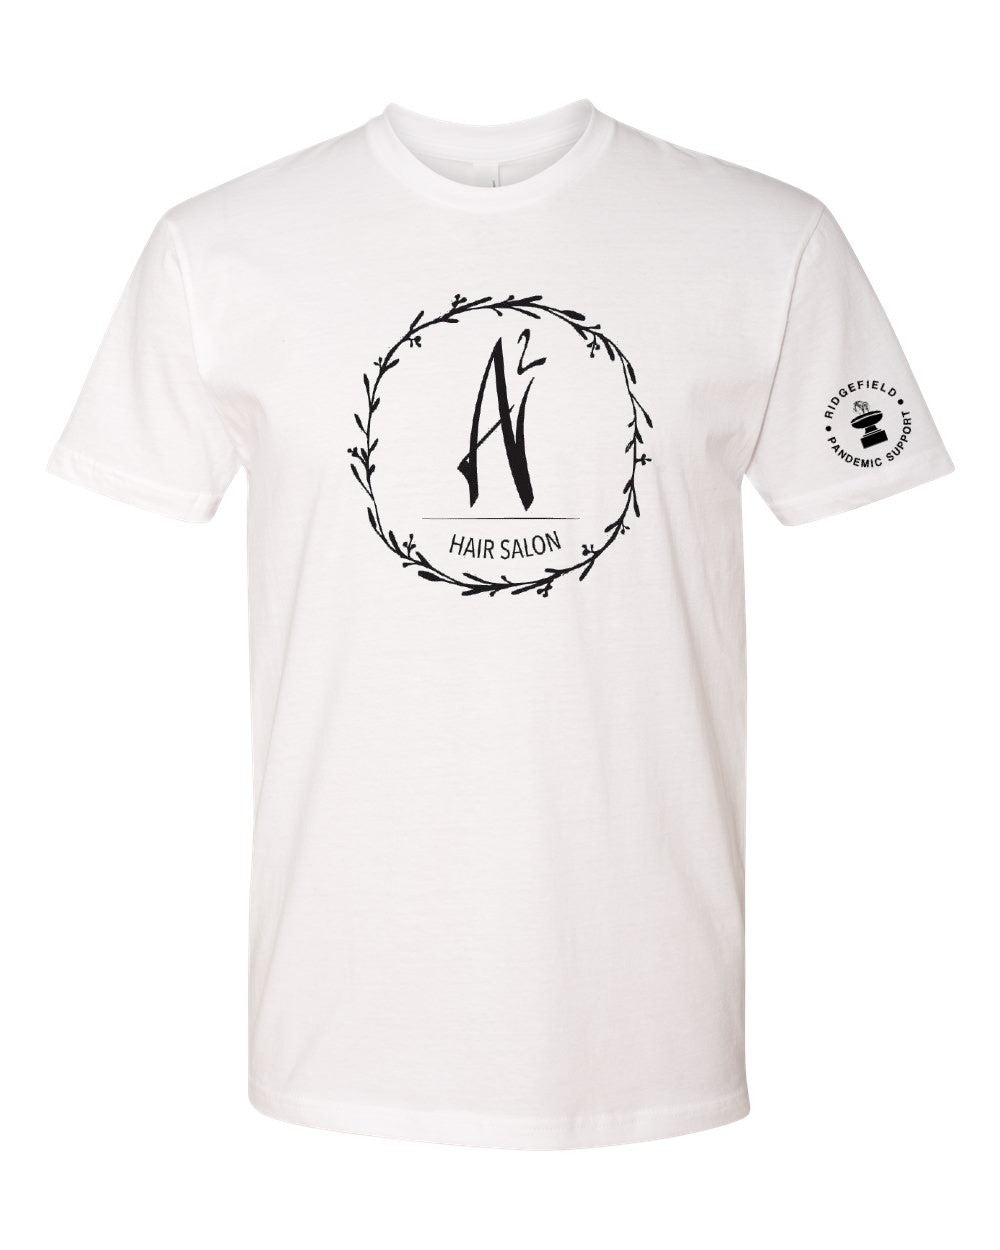 A2 Salon Premium Cotton Tshirt